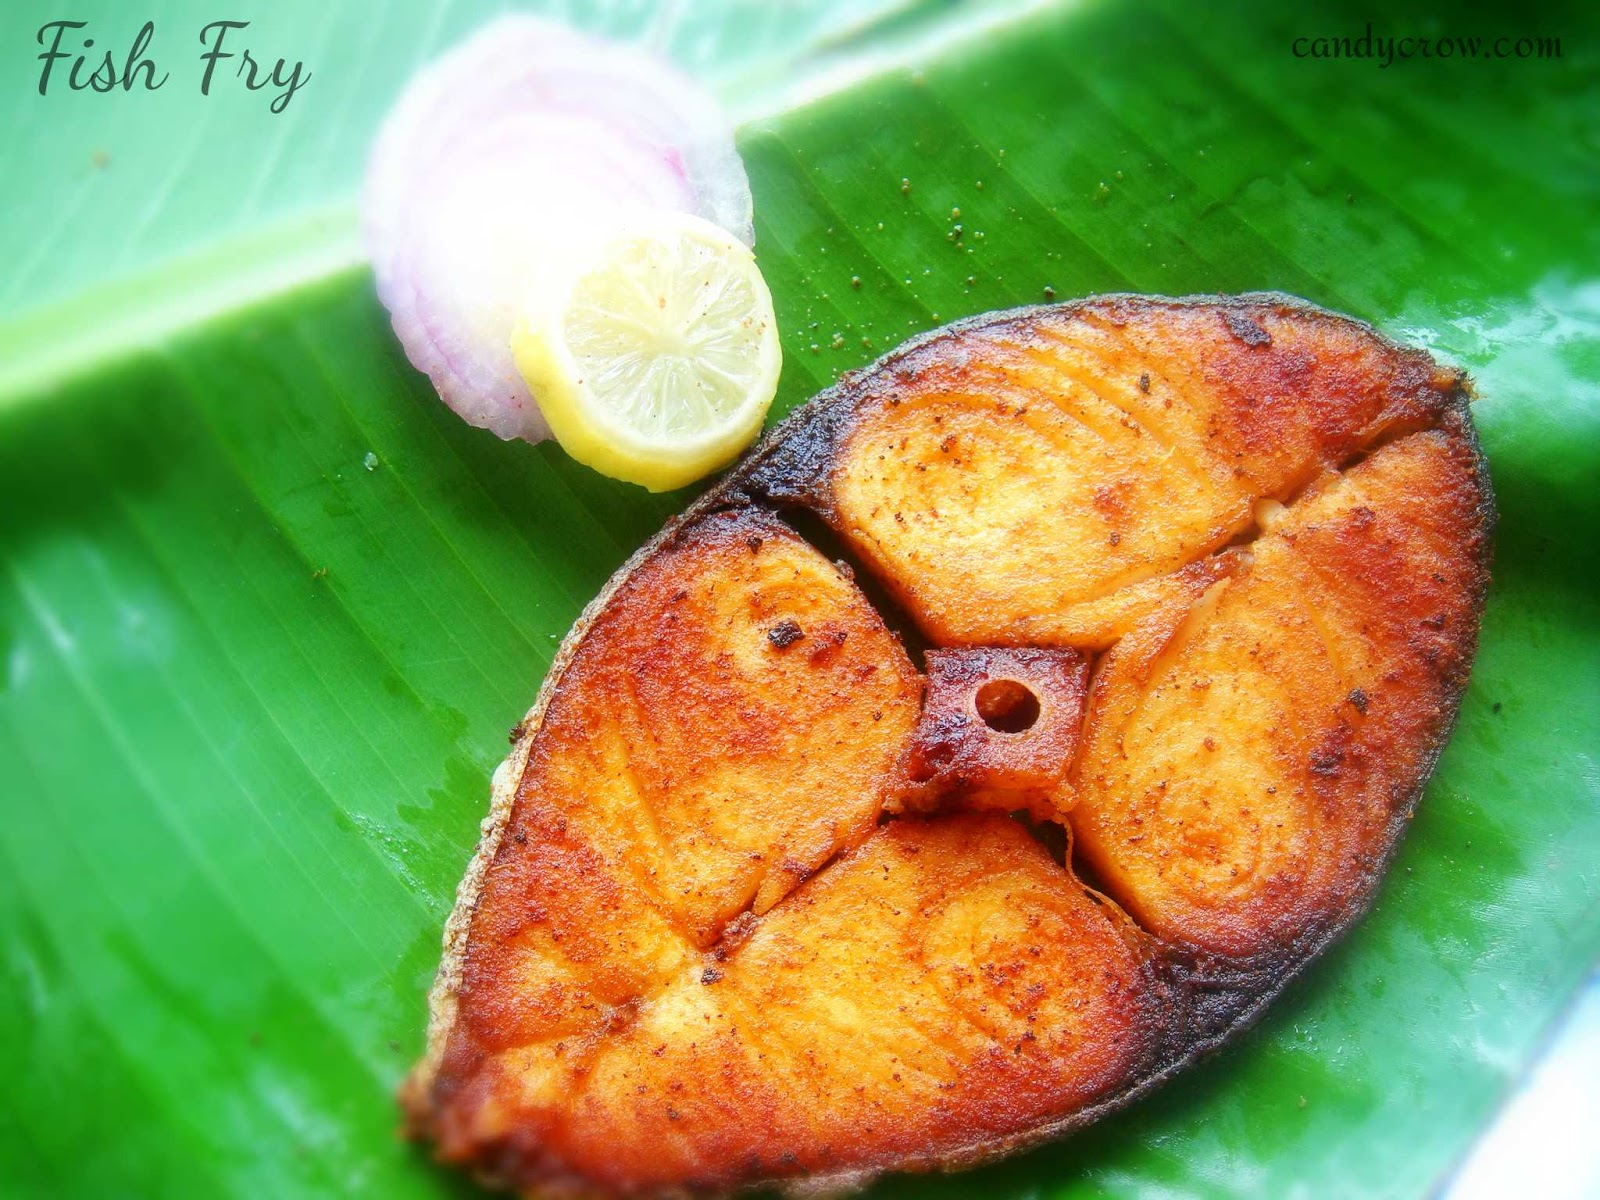 Fish fry south indian fish fry recipe candy crow top indian fish fry forumfinder Choice Image